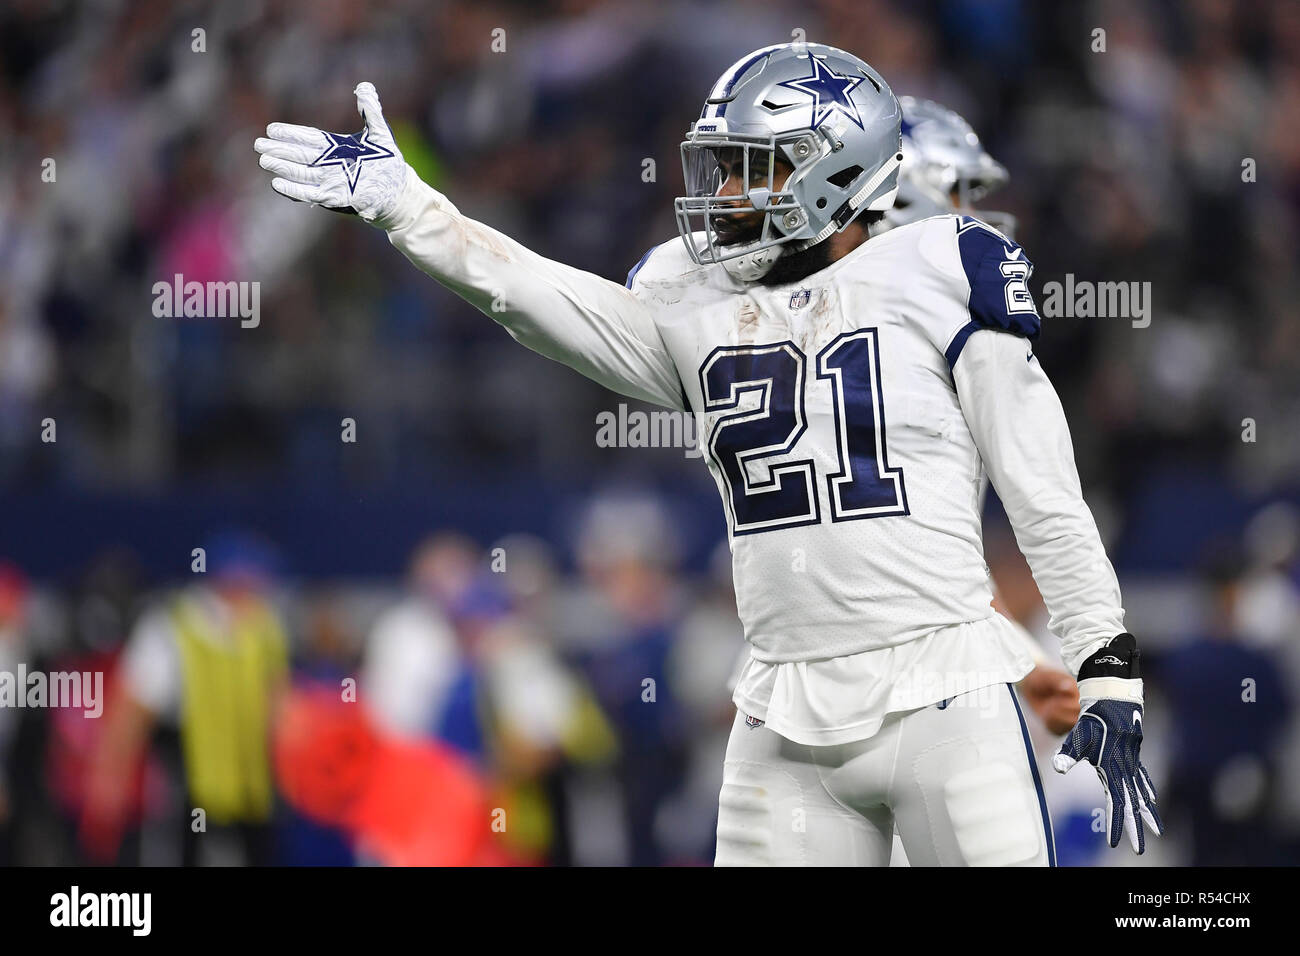 3296c039375 Arlington, Texas, USA. 29th Nov, 2018. Dallas Cowboys running back ...